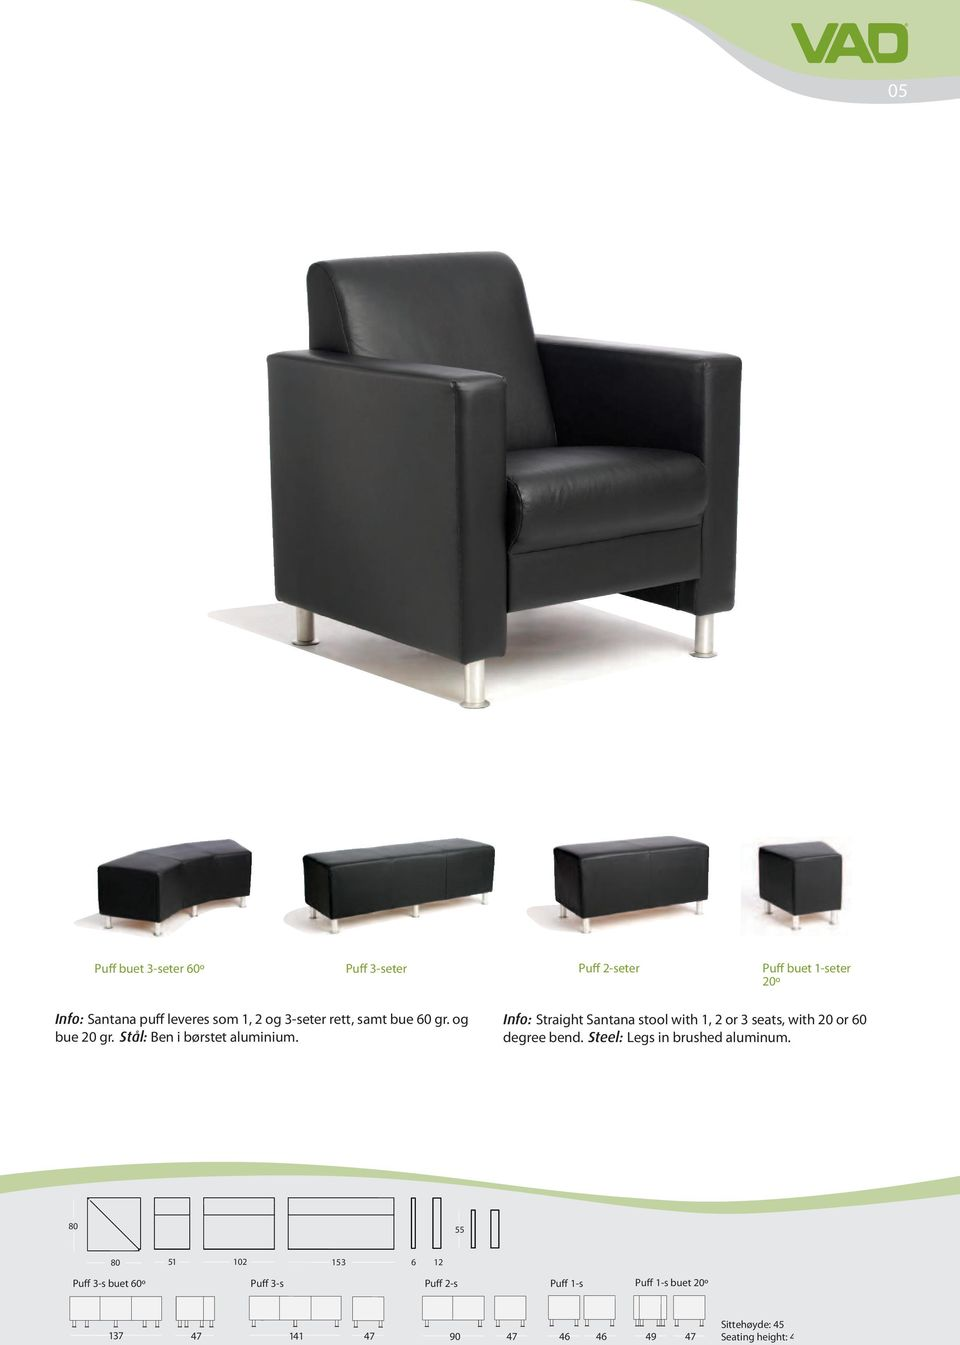 Info: Straight Santana stool with 1, 2 or 3 seats, with 20 or 60 degree bend. Steel: Legs in brushed aluminum.